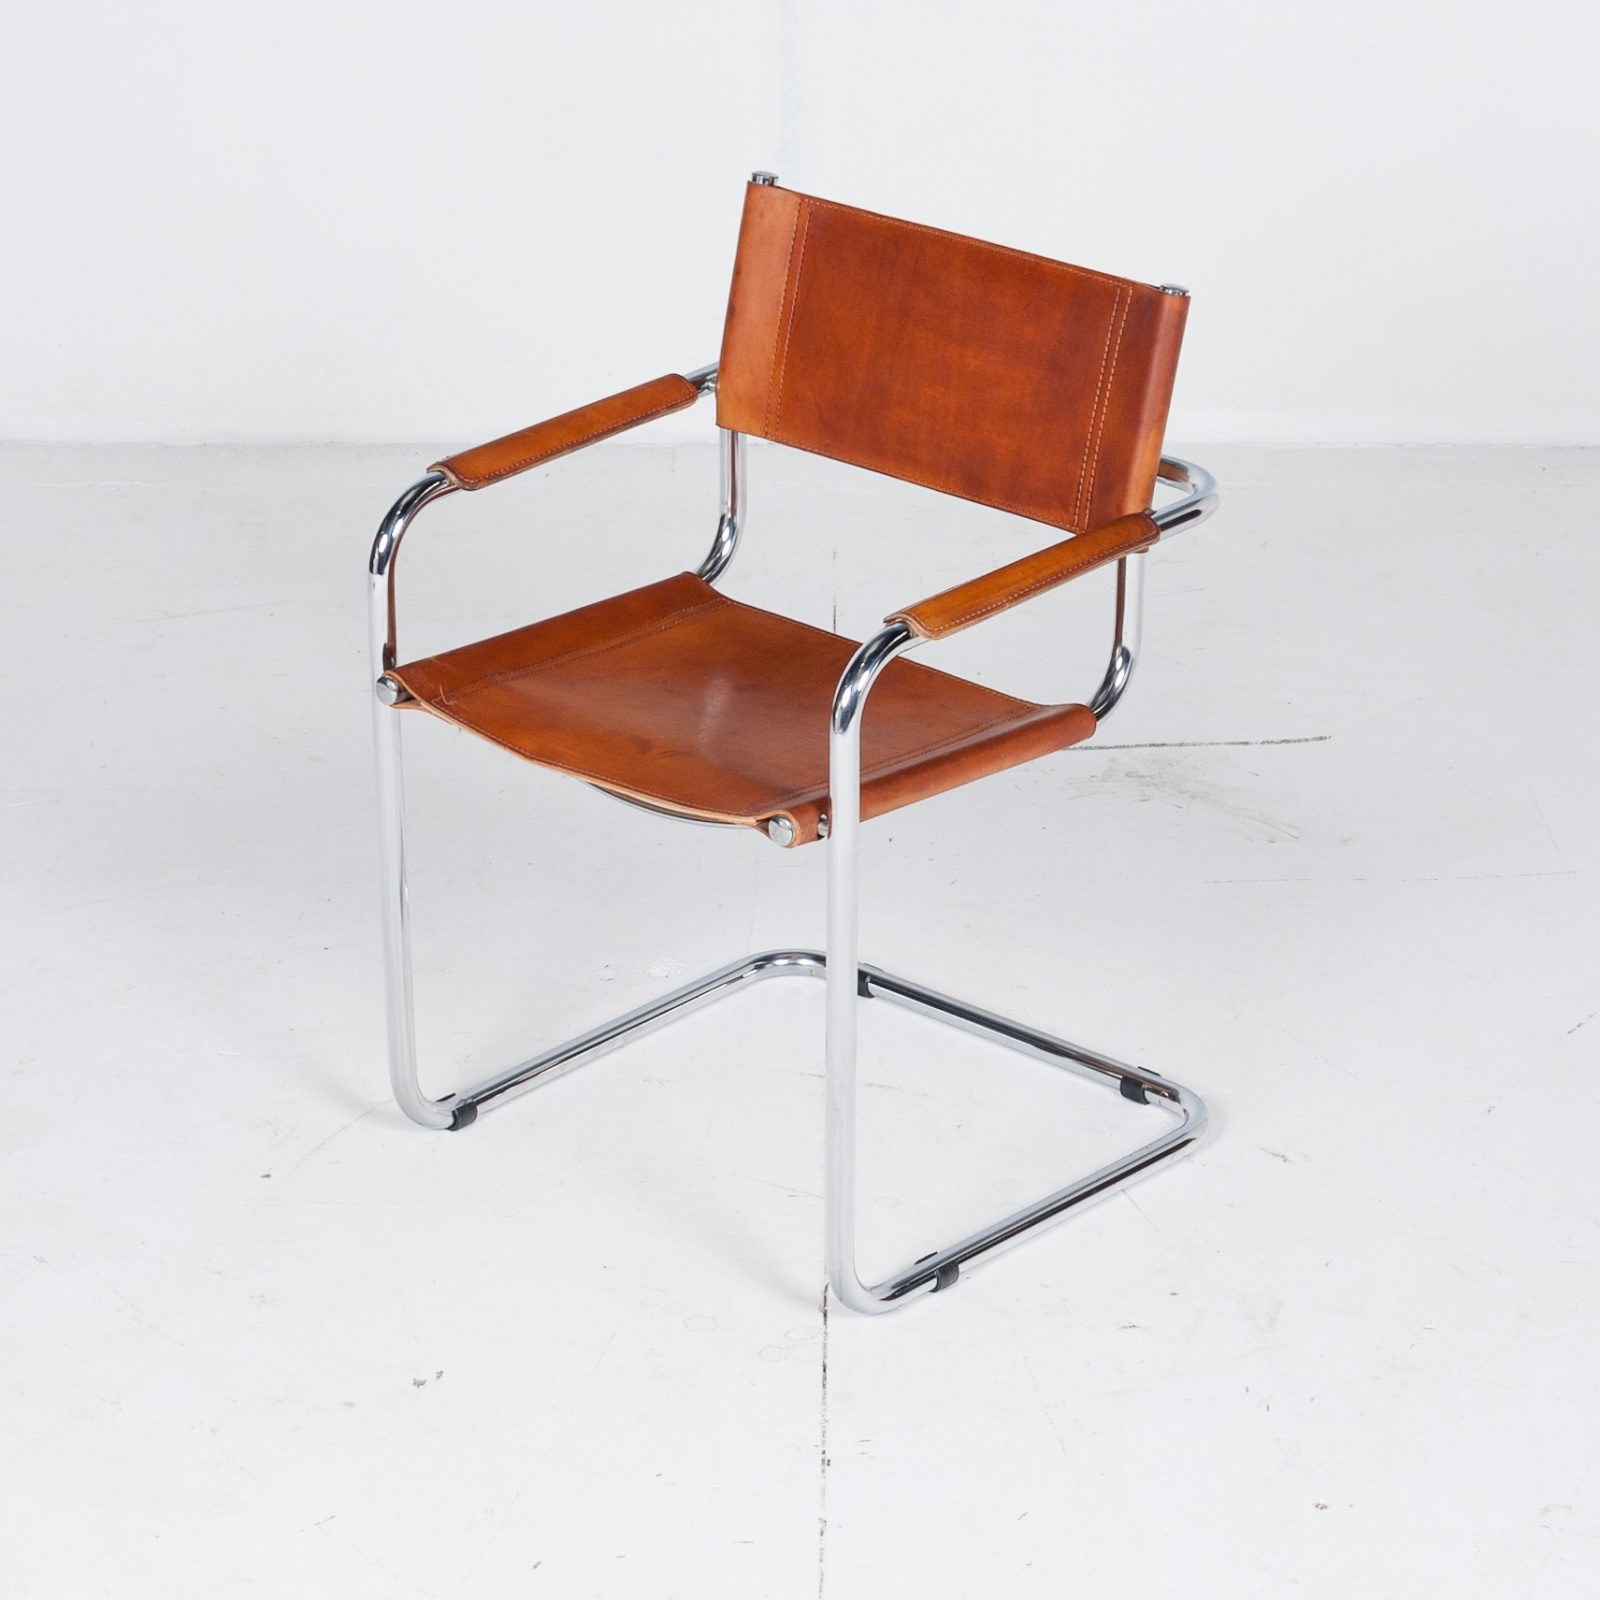 Set Of 4 Model S34 Cantilever Chairs In Tan Leather By Mart Stam For Thonet, 1980s, Germany20 2